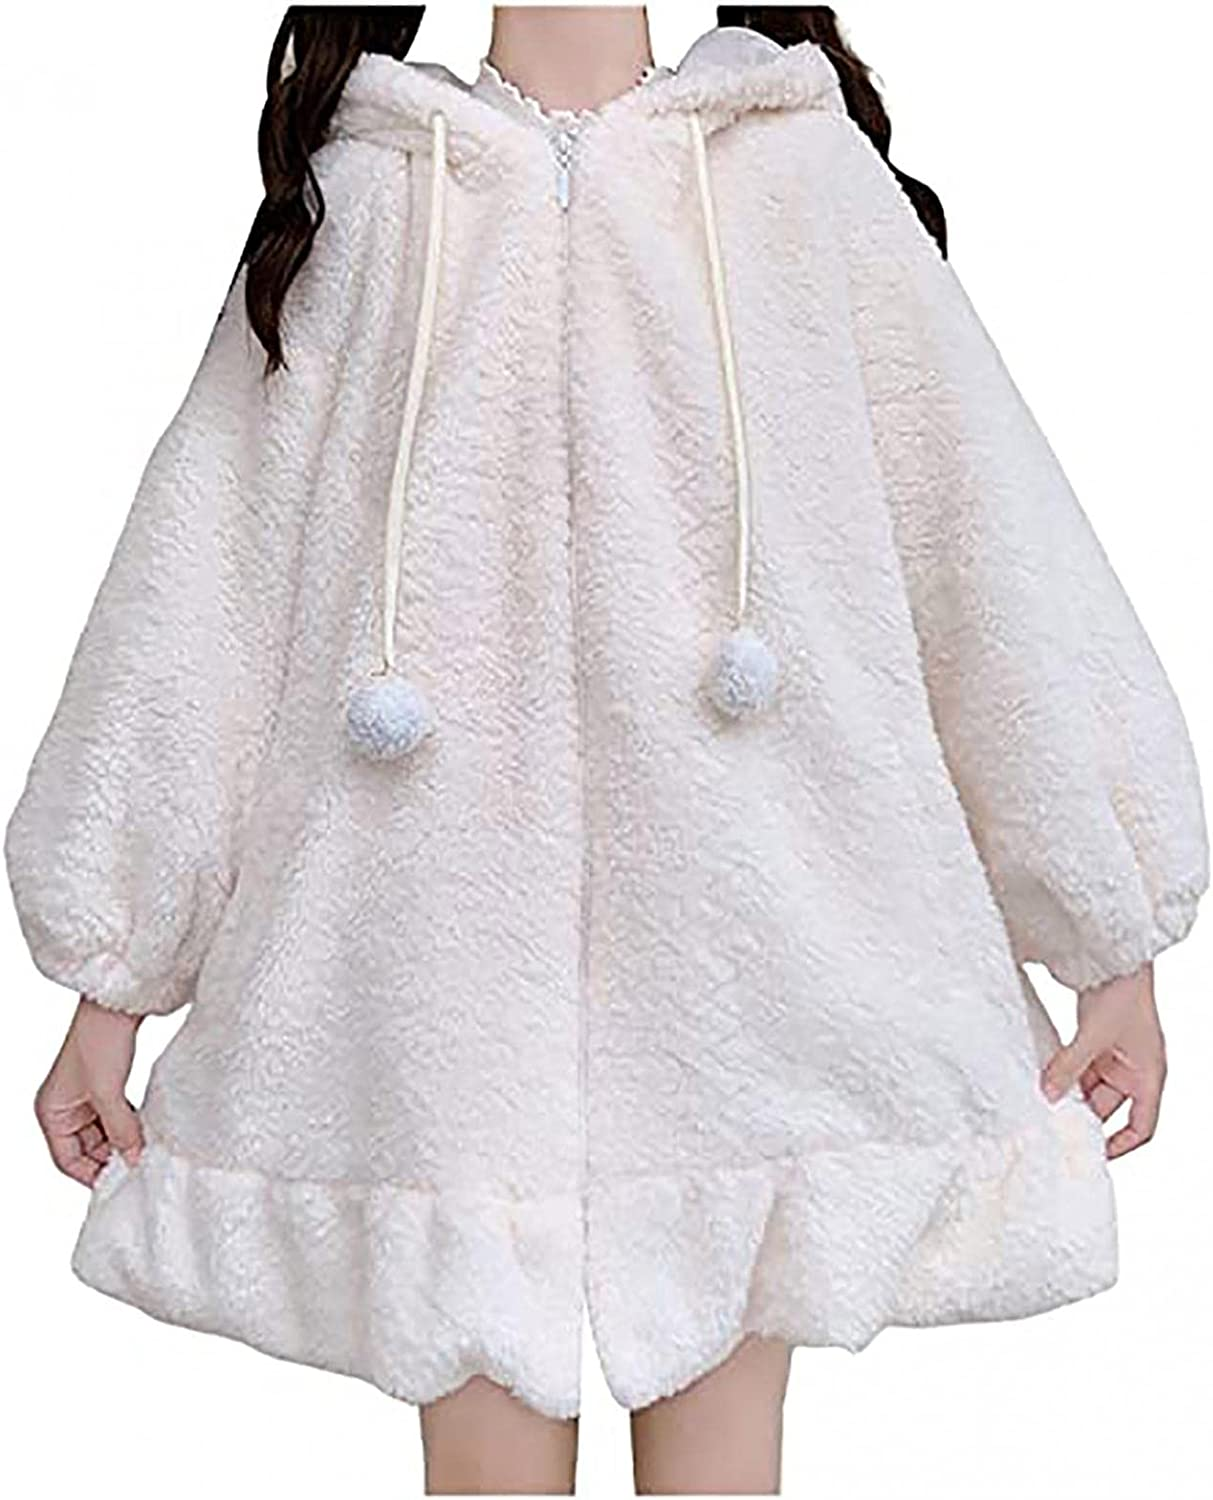 Oversized Flannels for Women Cute Bunny Hoodie With Ears Long Sleeve Blouse Winter Comfy Pullover